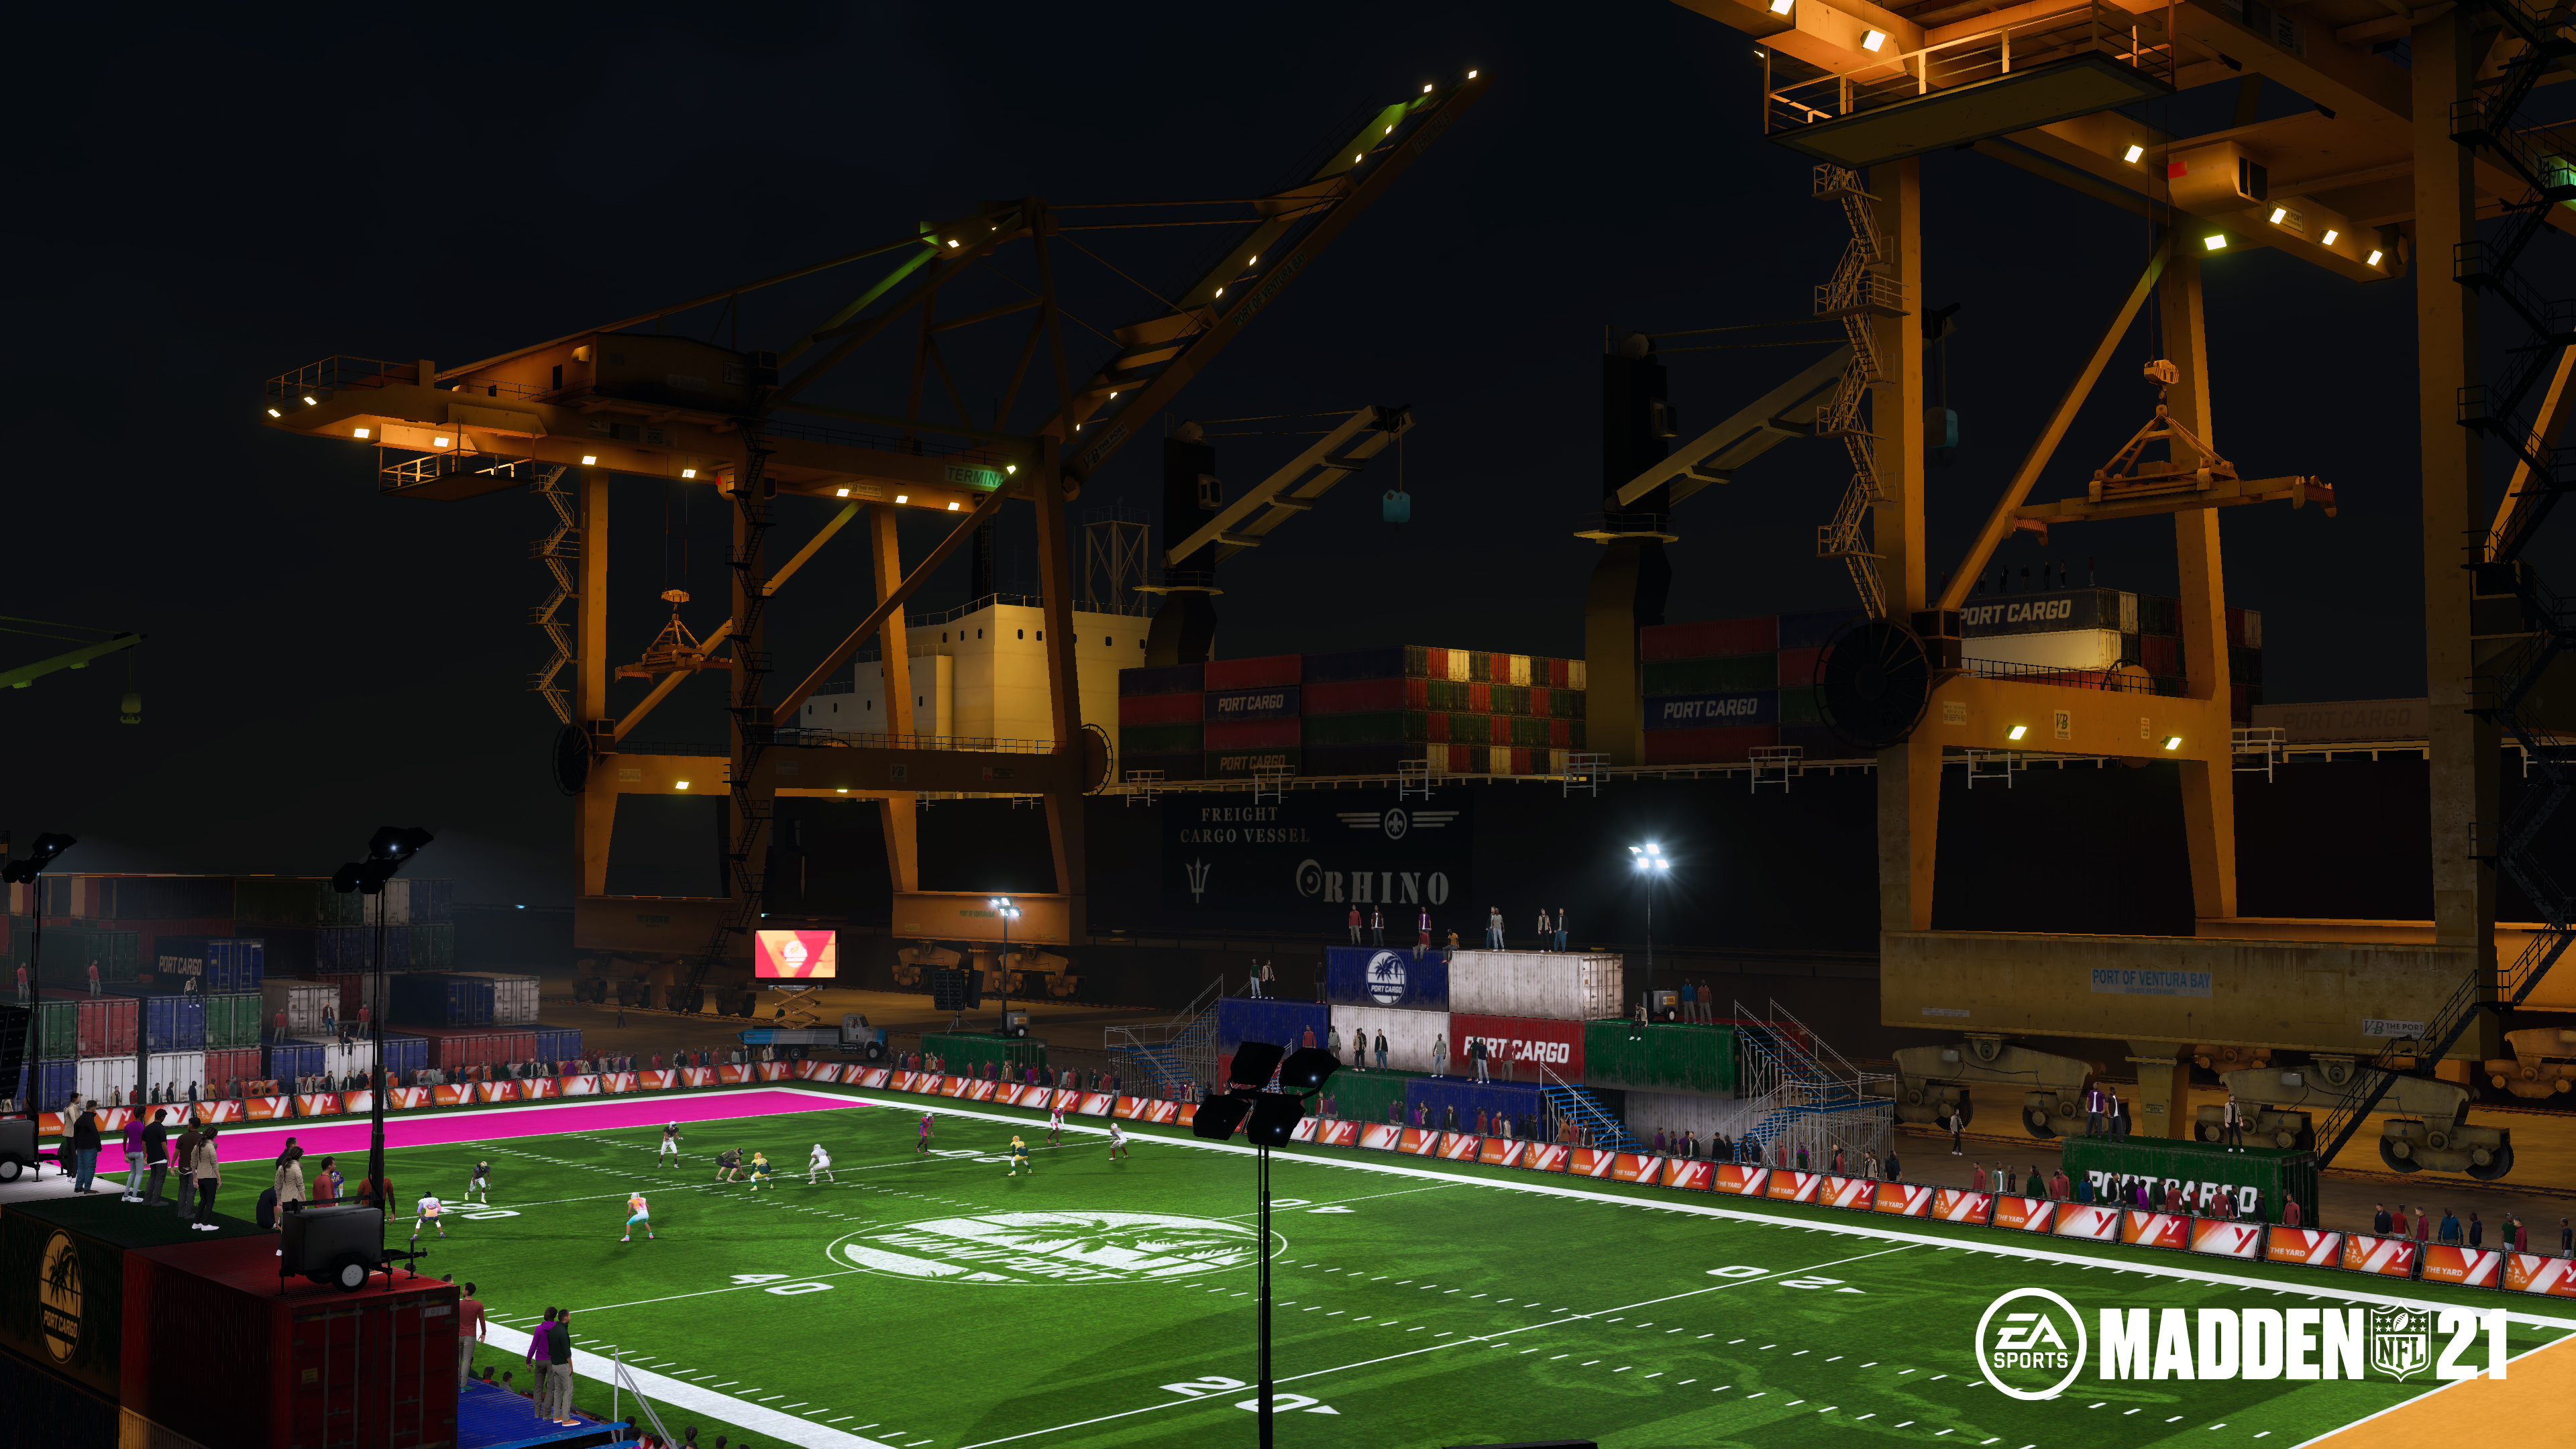 Madden NFL 21 The Yard